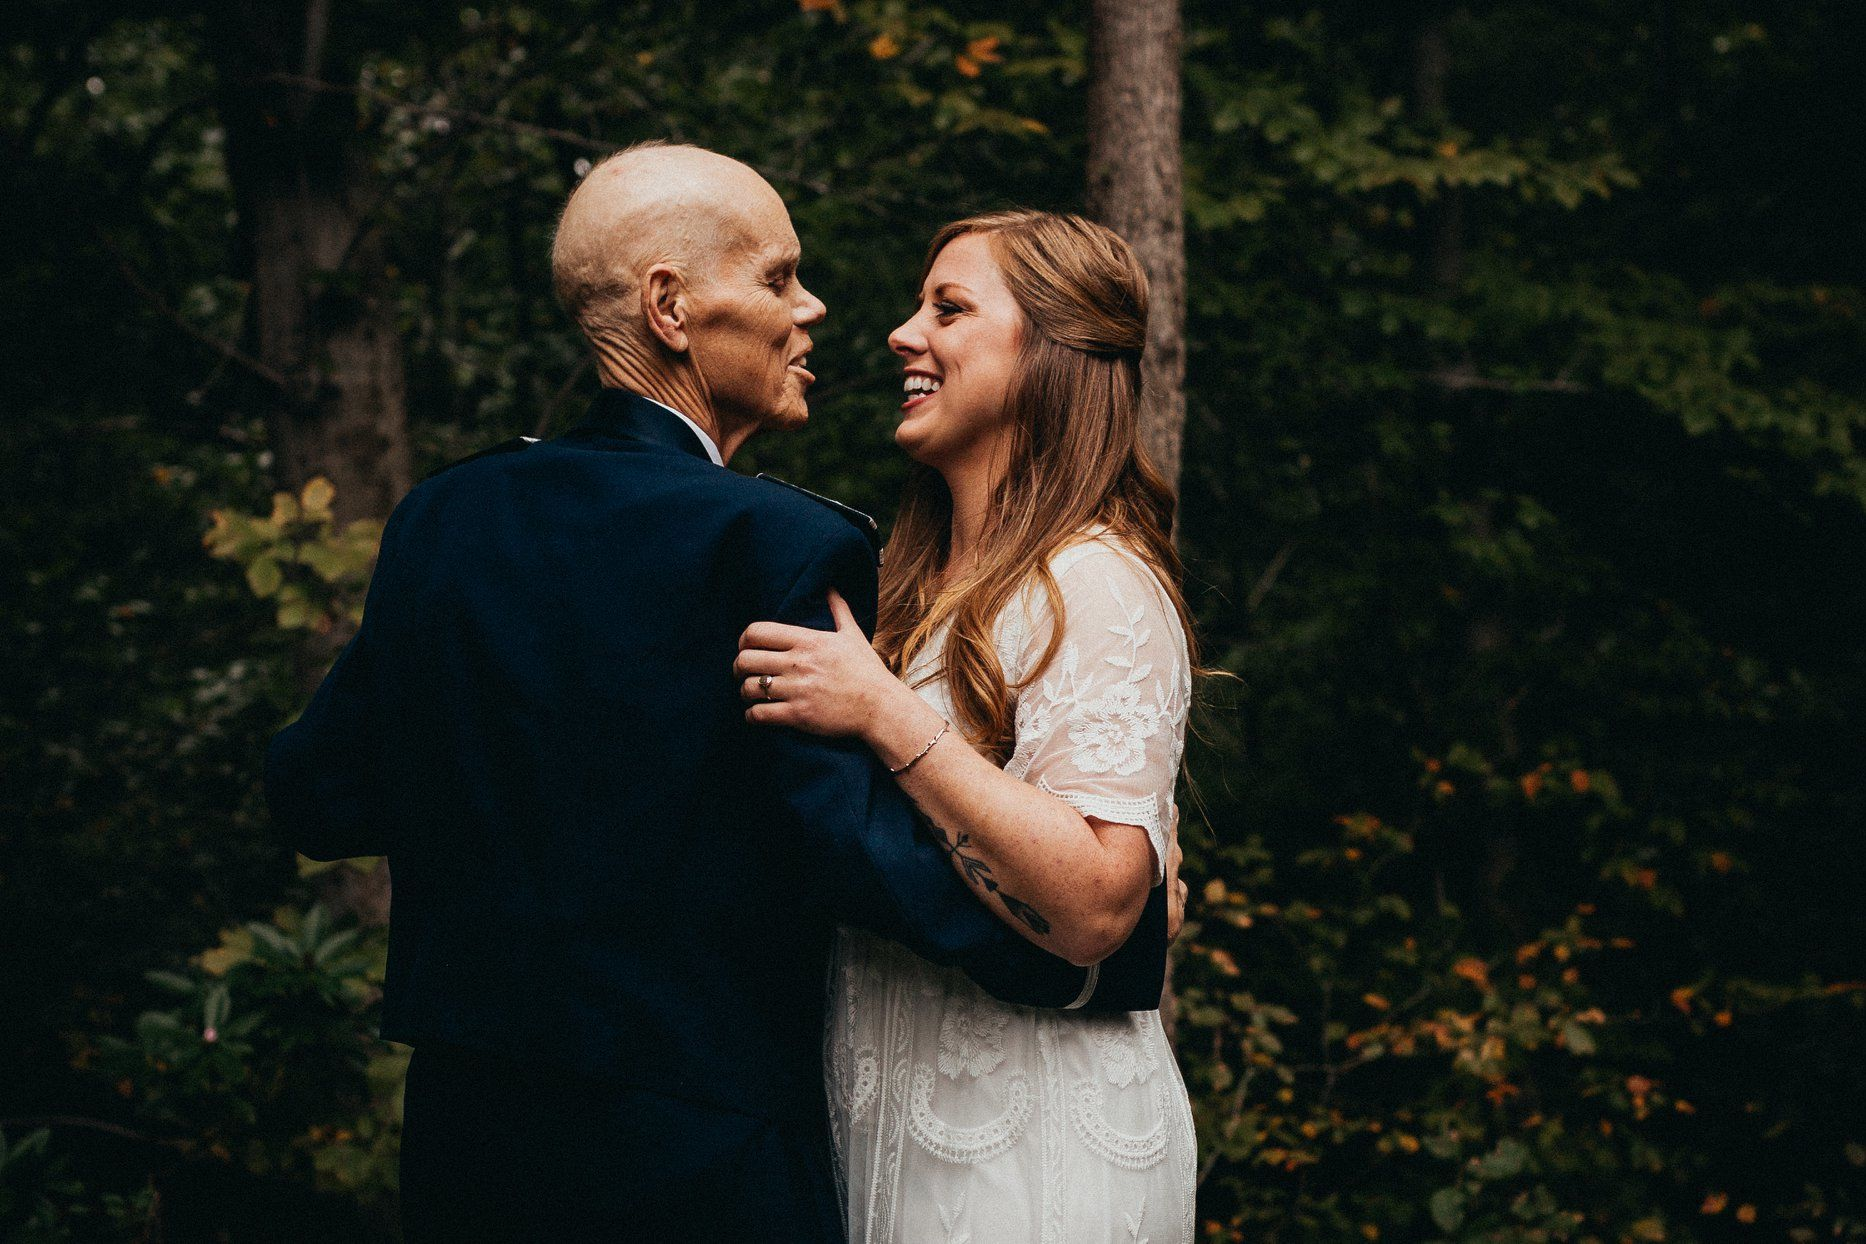 Bride-to-Be Exchanges Engagement Pictures for First Dance Photo Shoot with Dying Dad